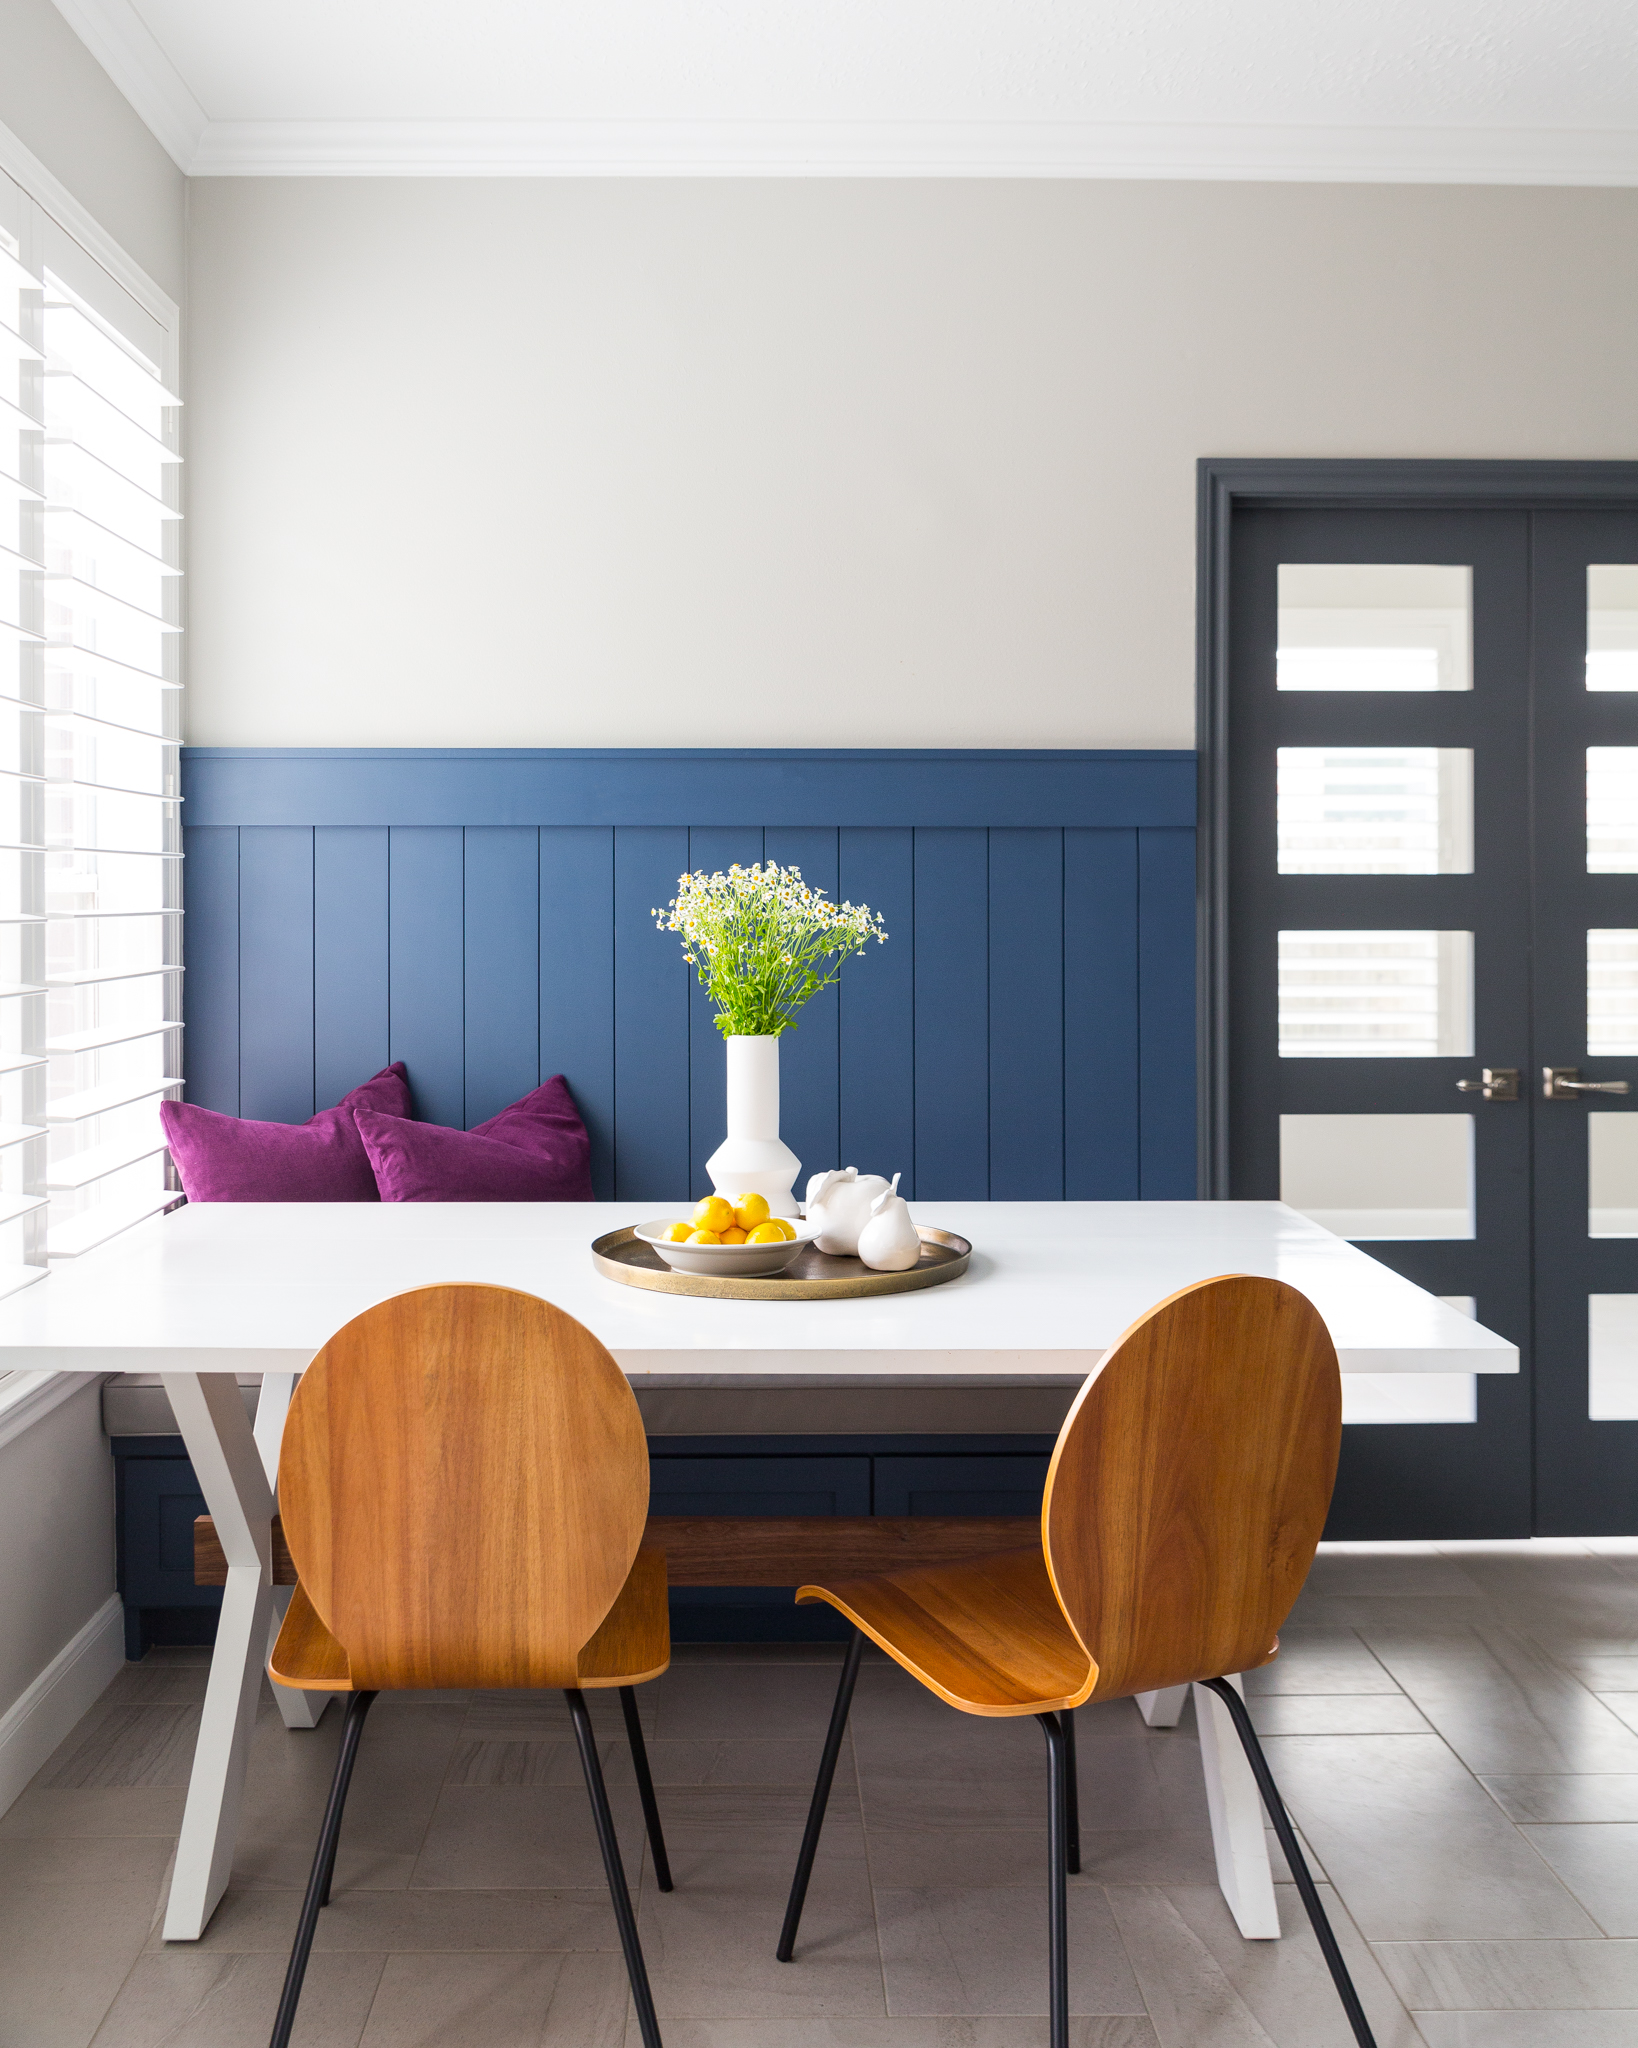 BEFORE AND AFTER - A navy and white kitchen remodel w/ built in breakfast nook | Carla Aston, Designer | Colleen Scott, Photographer #banquette #shiplap #breakfastroom